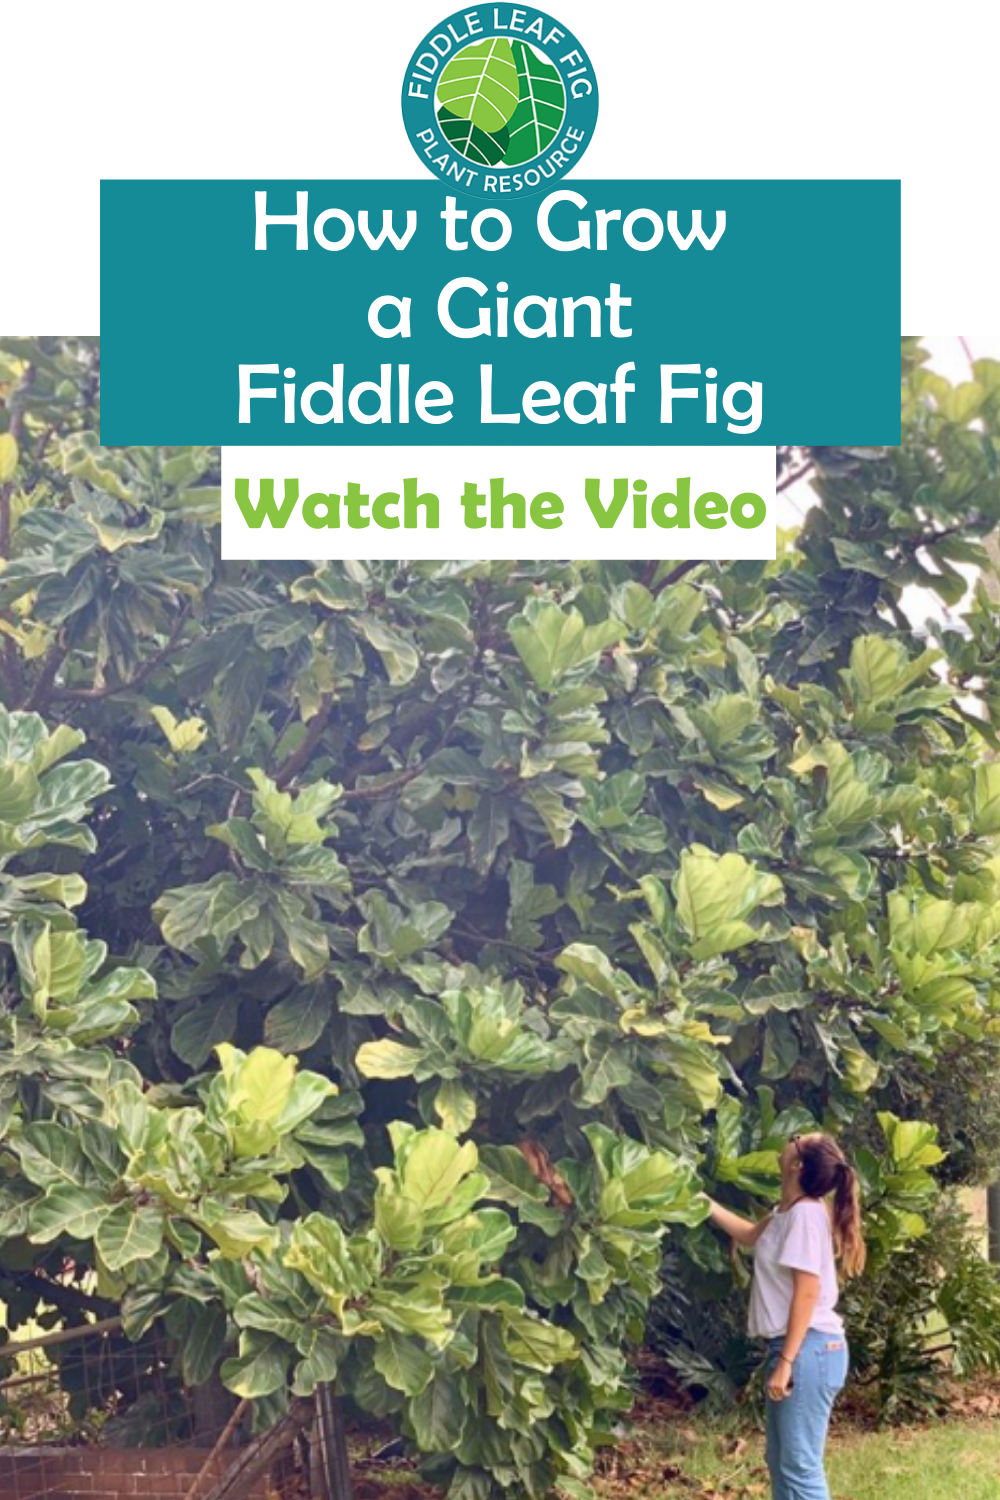 How to Grow a Giant Fiddle Leaf Fig